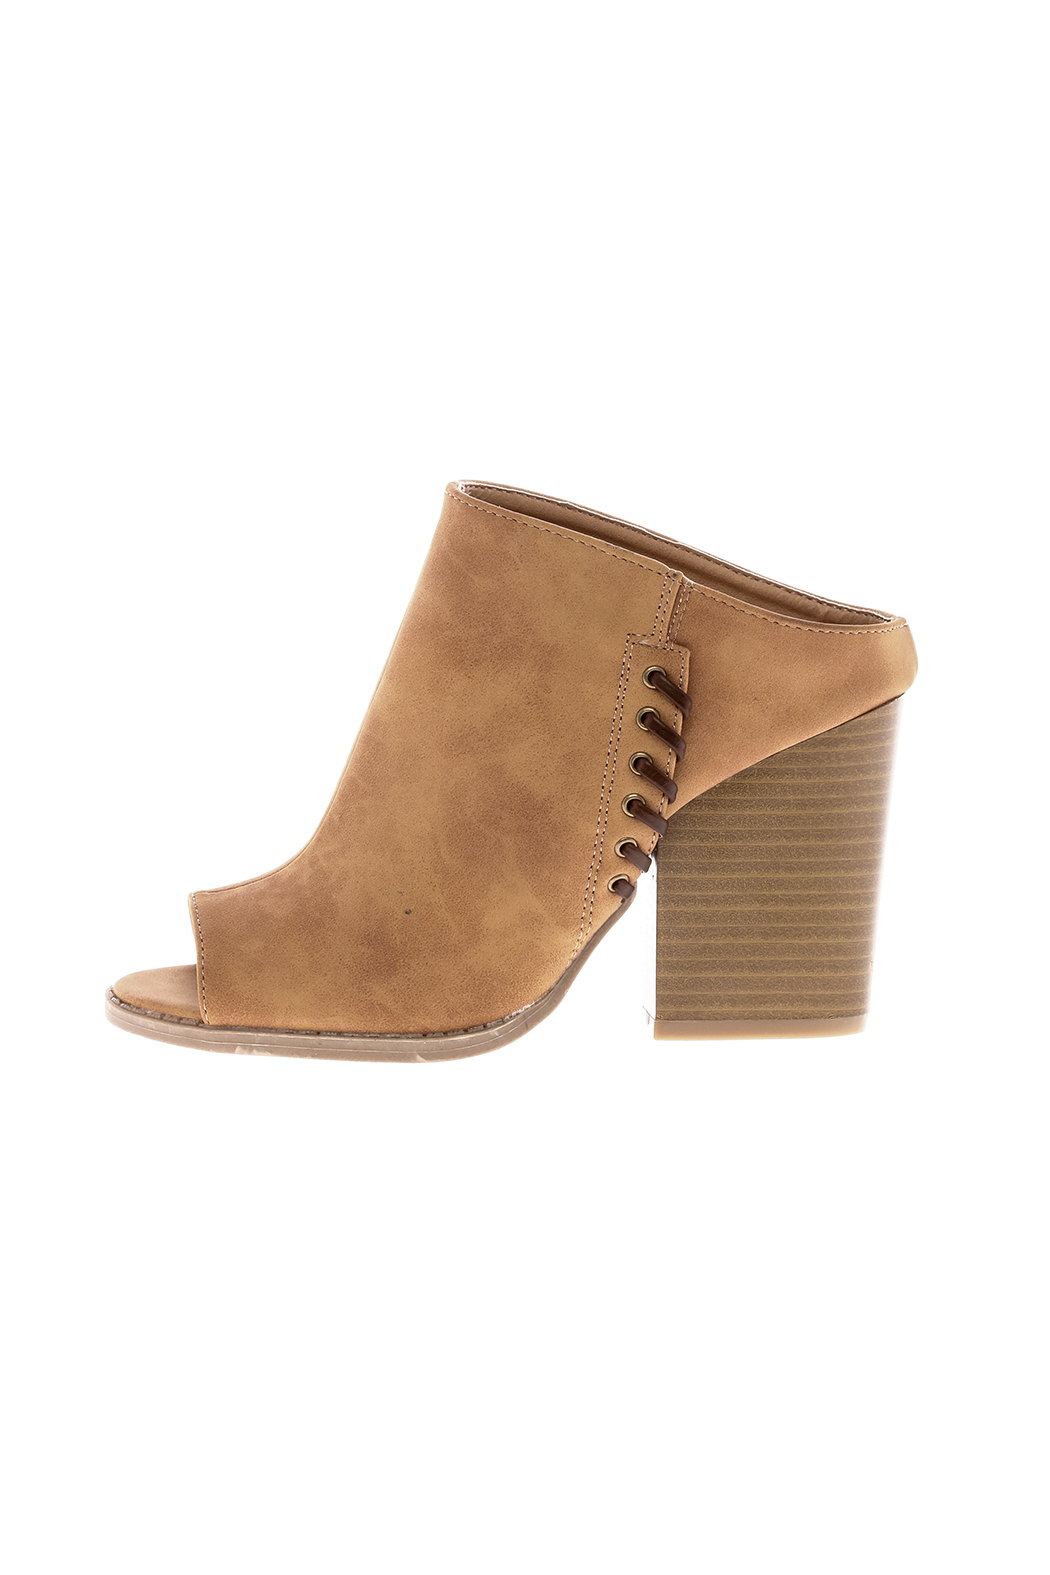 Qupid Suede Tan Stitch Mule - Front Full Image